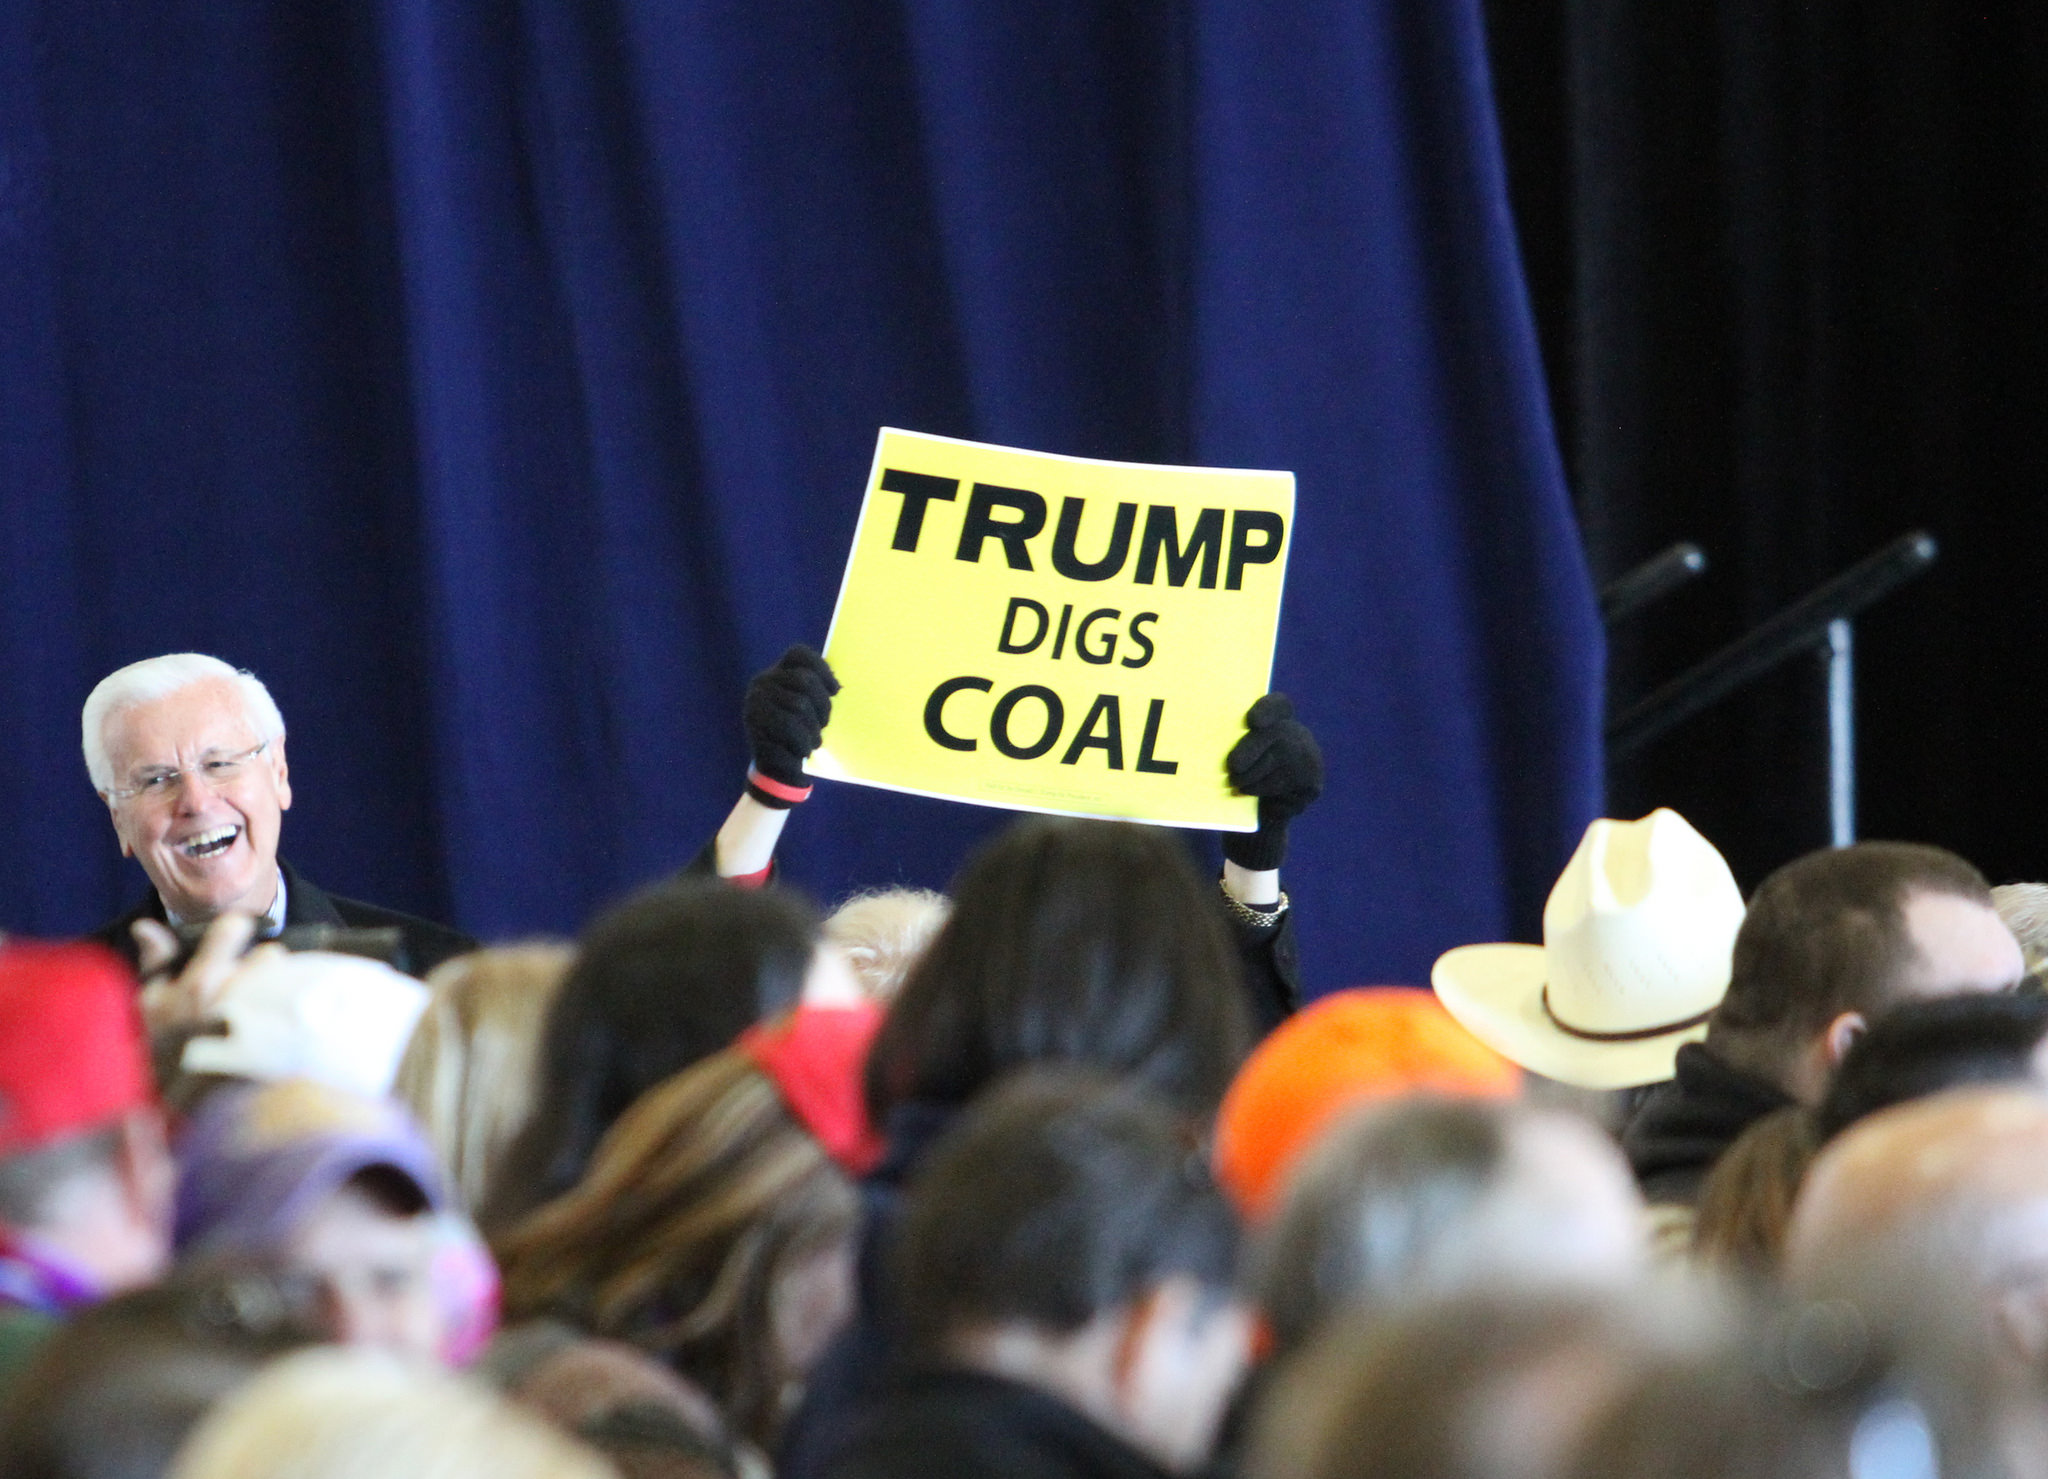 Someone holding a 'Trump digs coal' sign at a rally